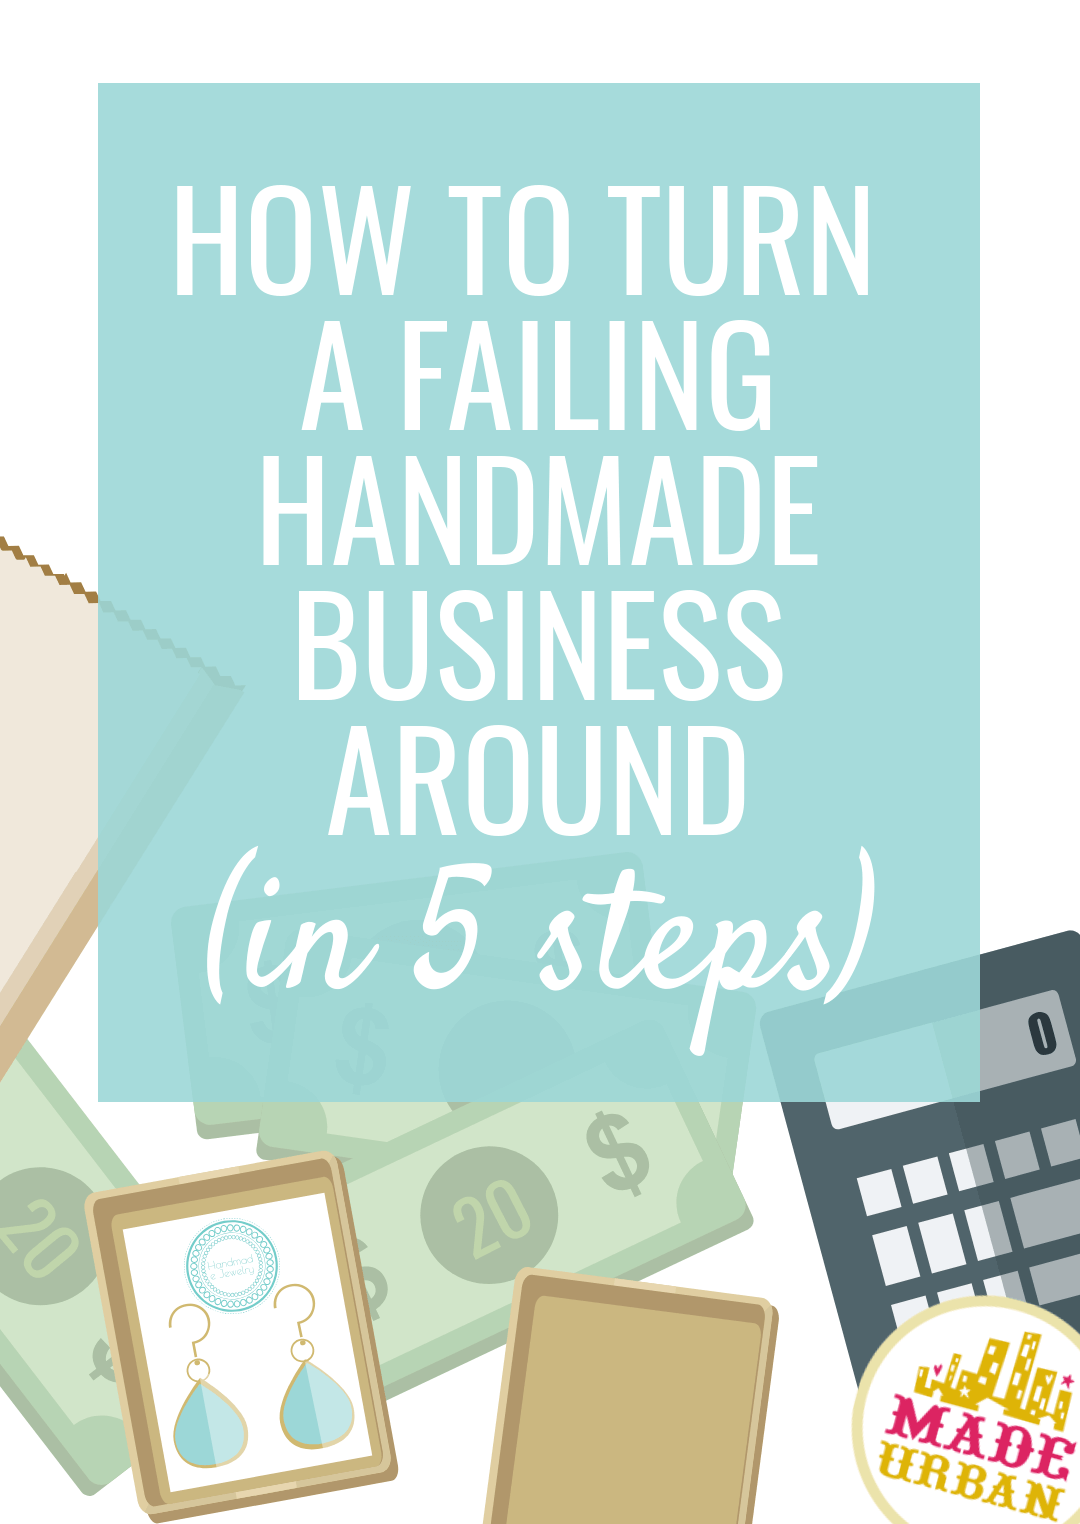 How to Turn a Failing Handmade Business Around in 5 Steps